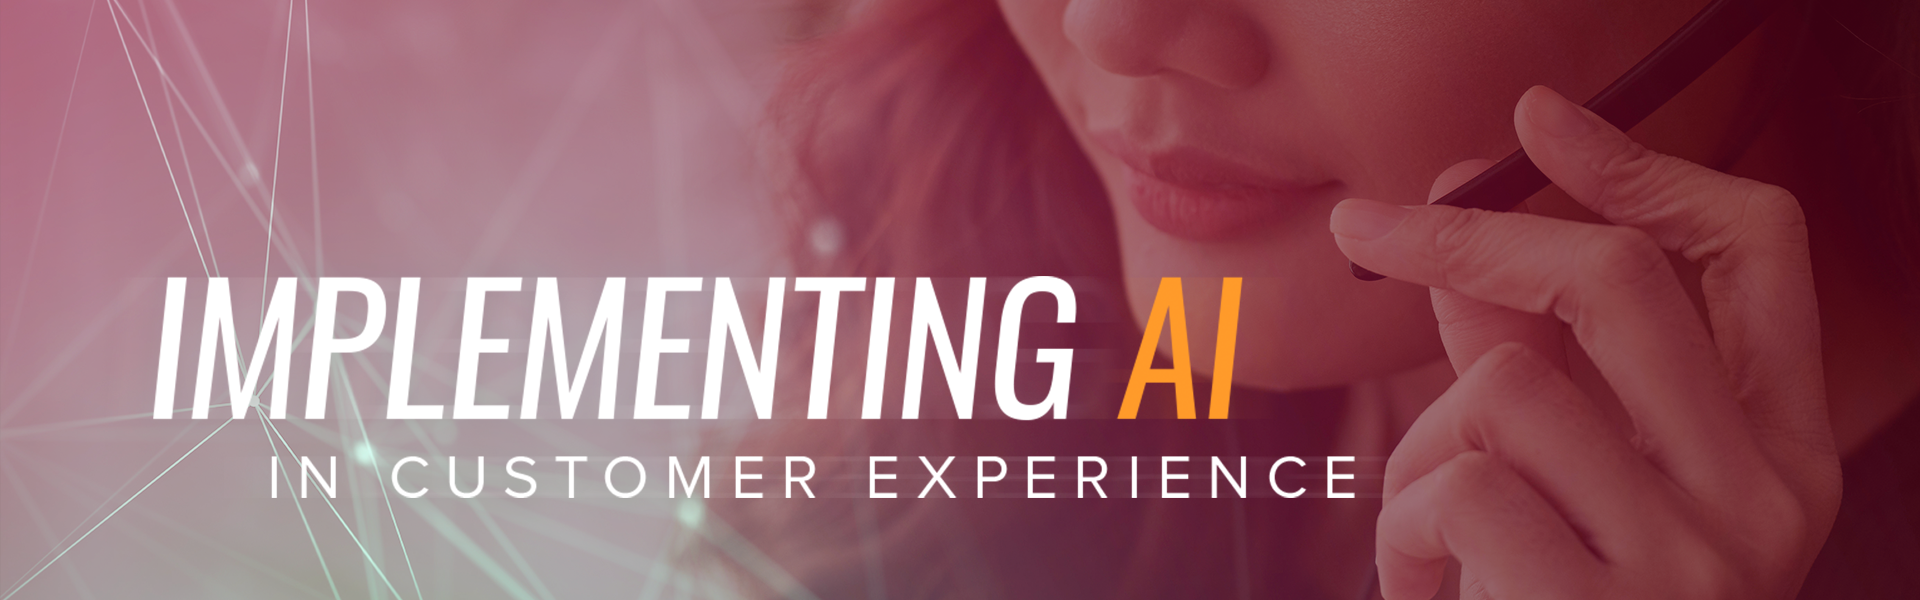 0203_Implementing_AI_in_customer_experience_(title)